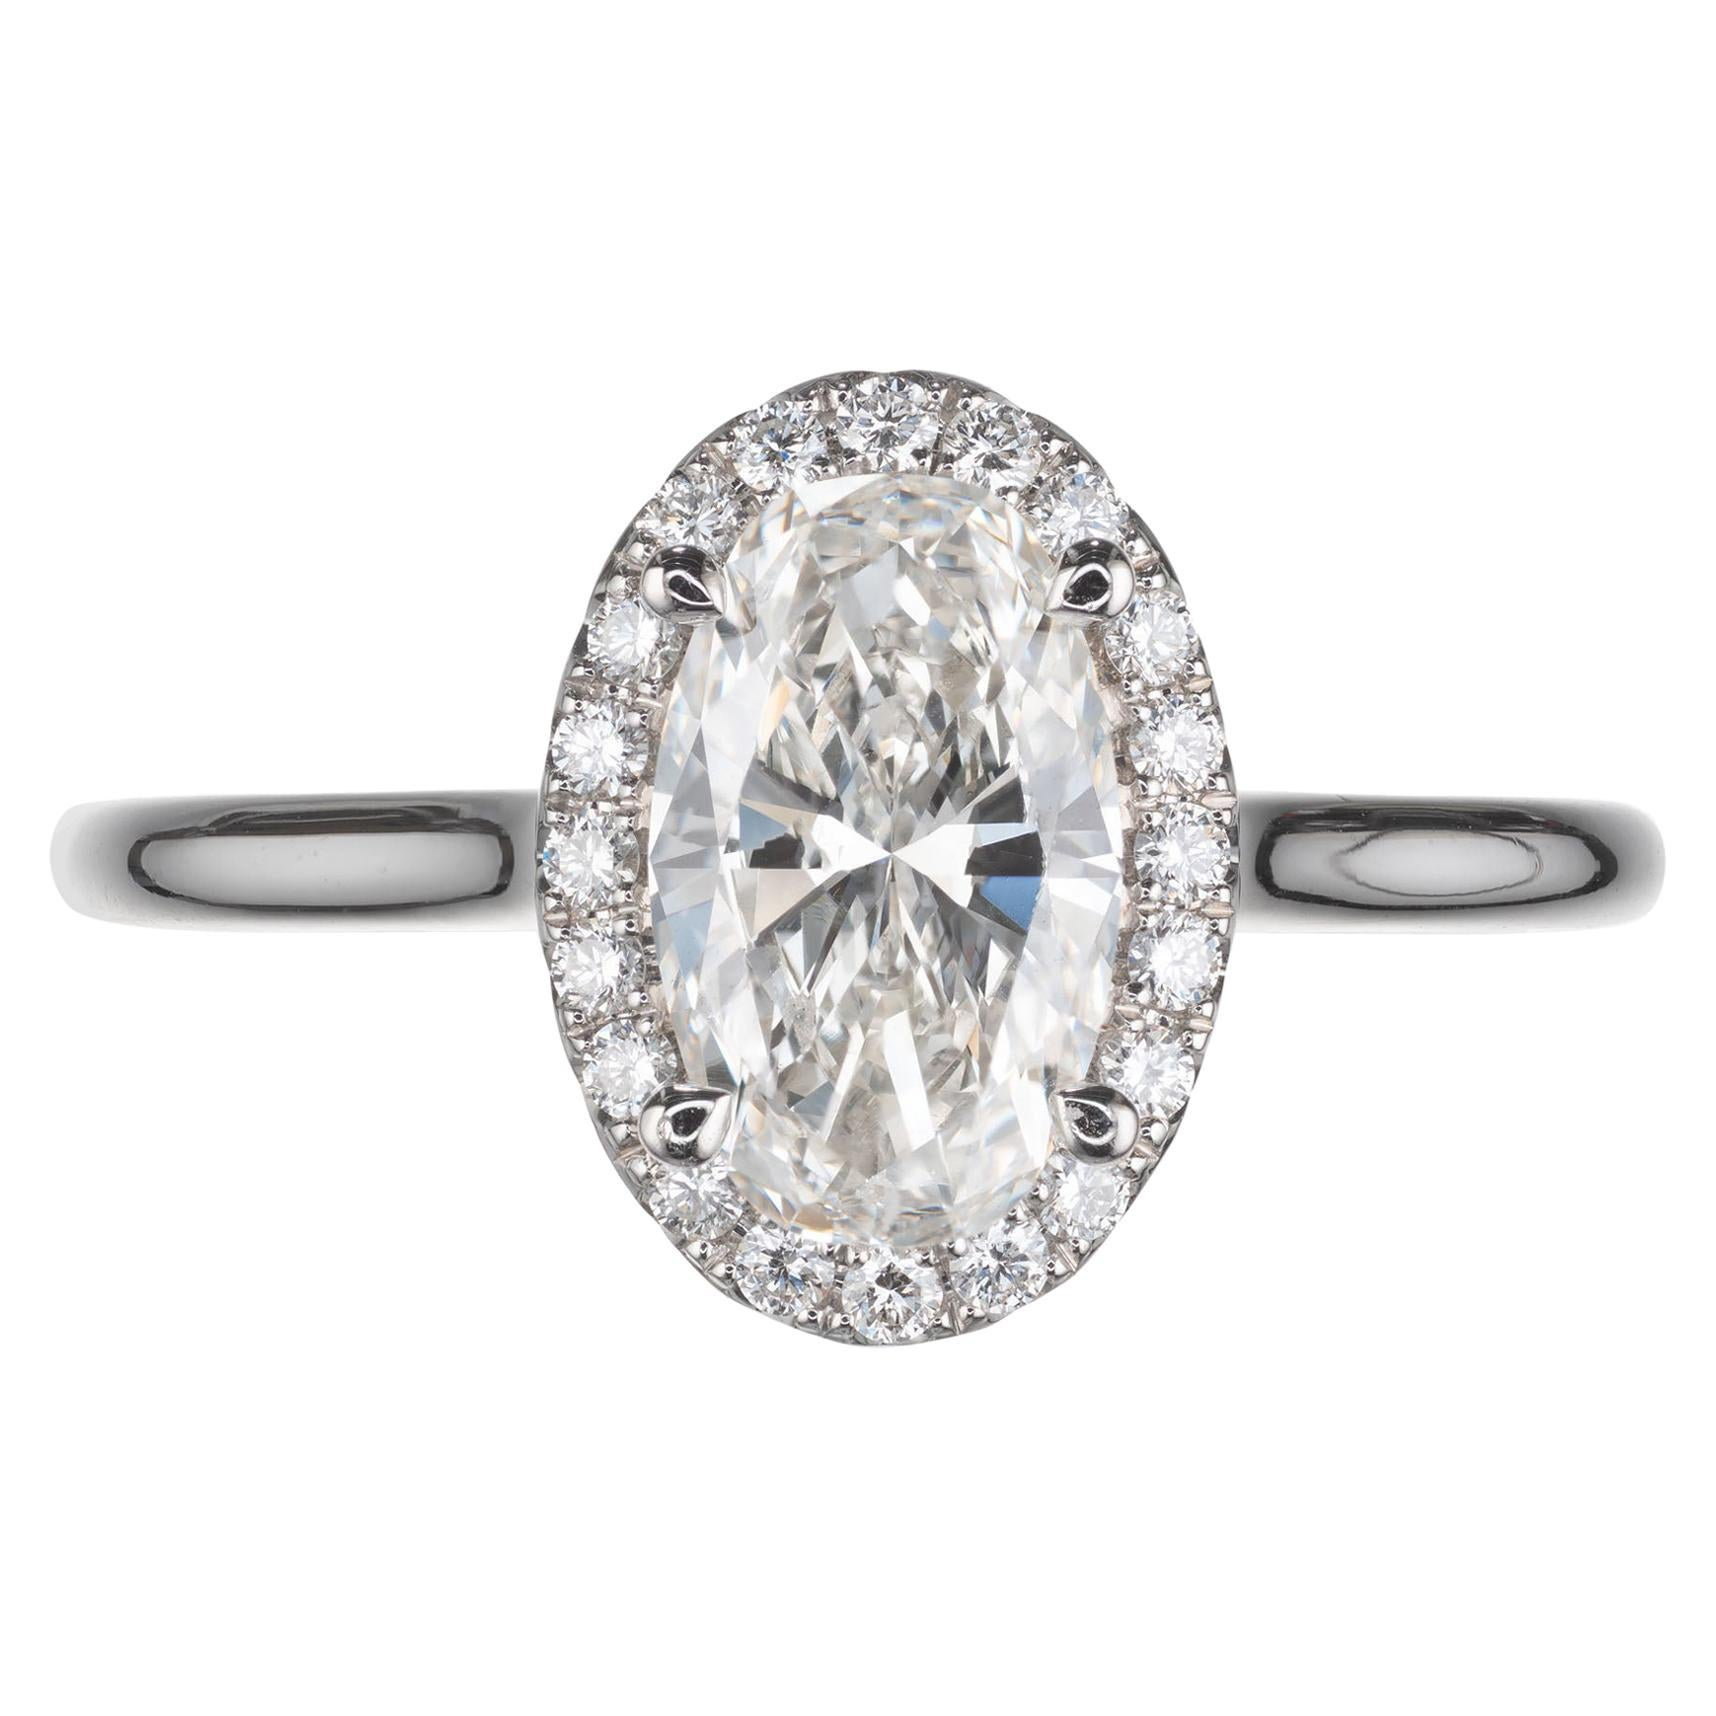 Peter Suchy GIA Certified 1.17 Carat Oval Diamond Halo Platinum Engagement Ring